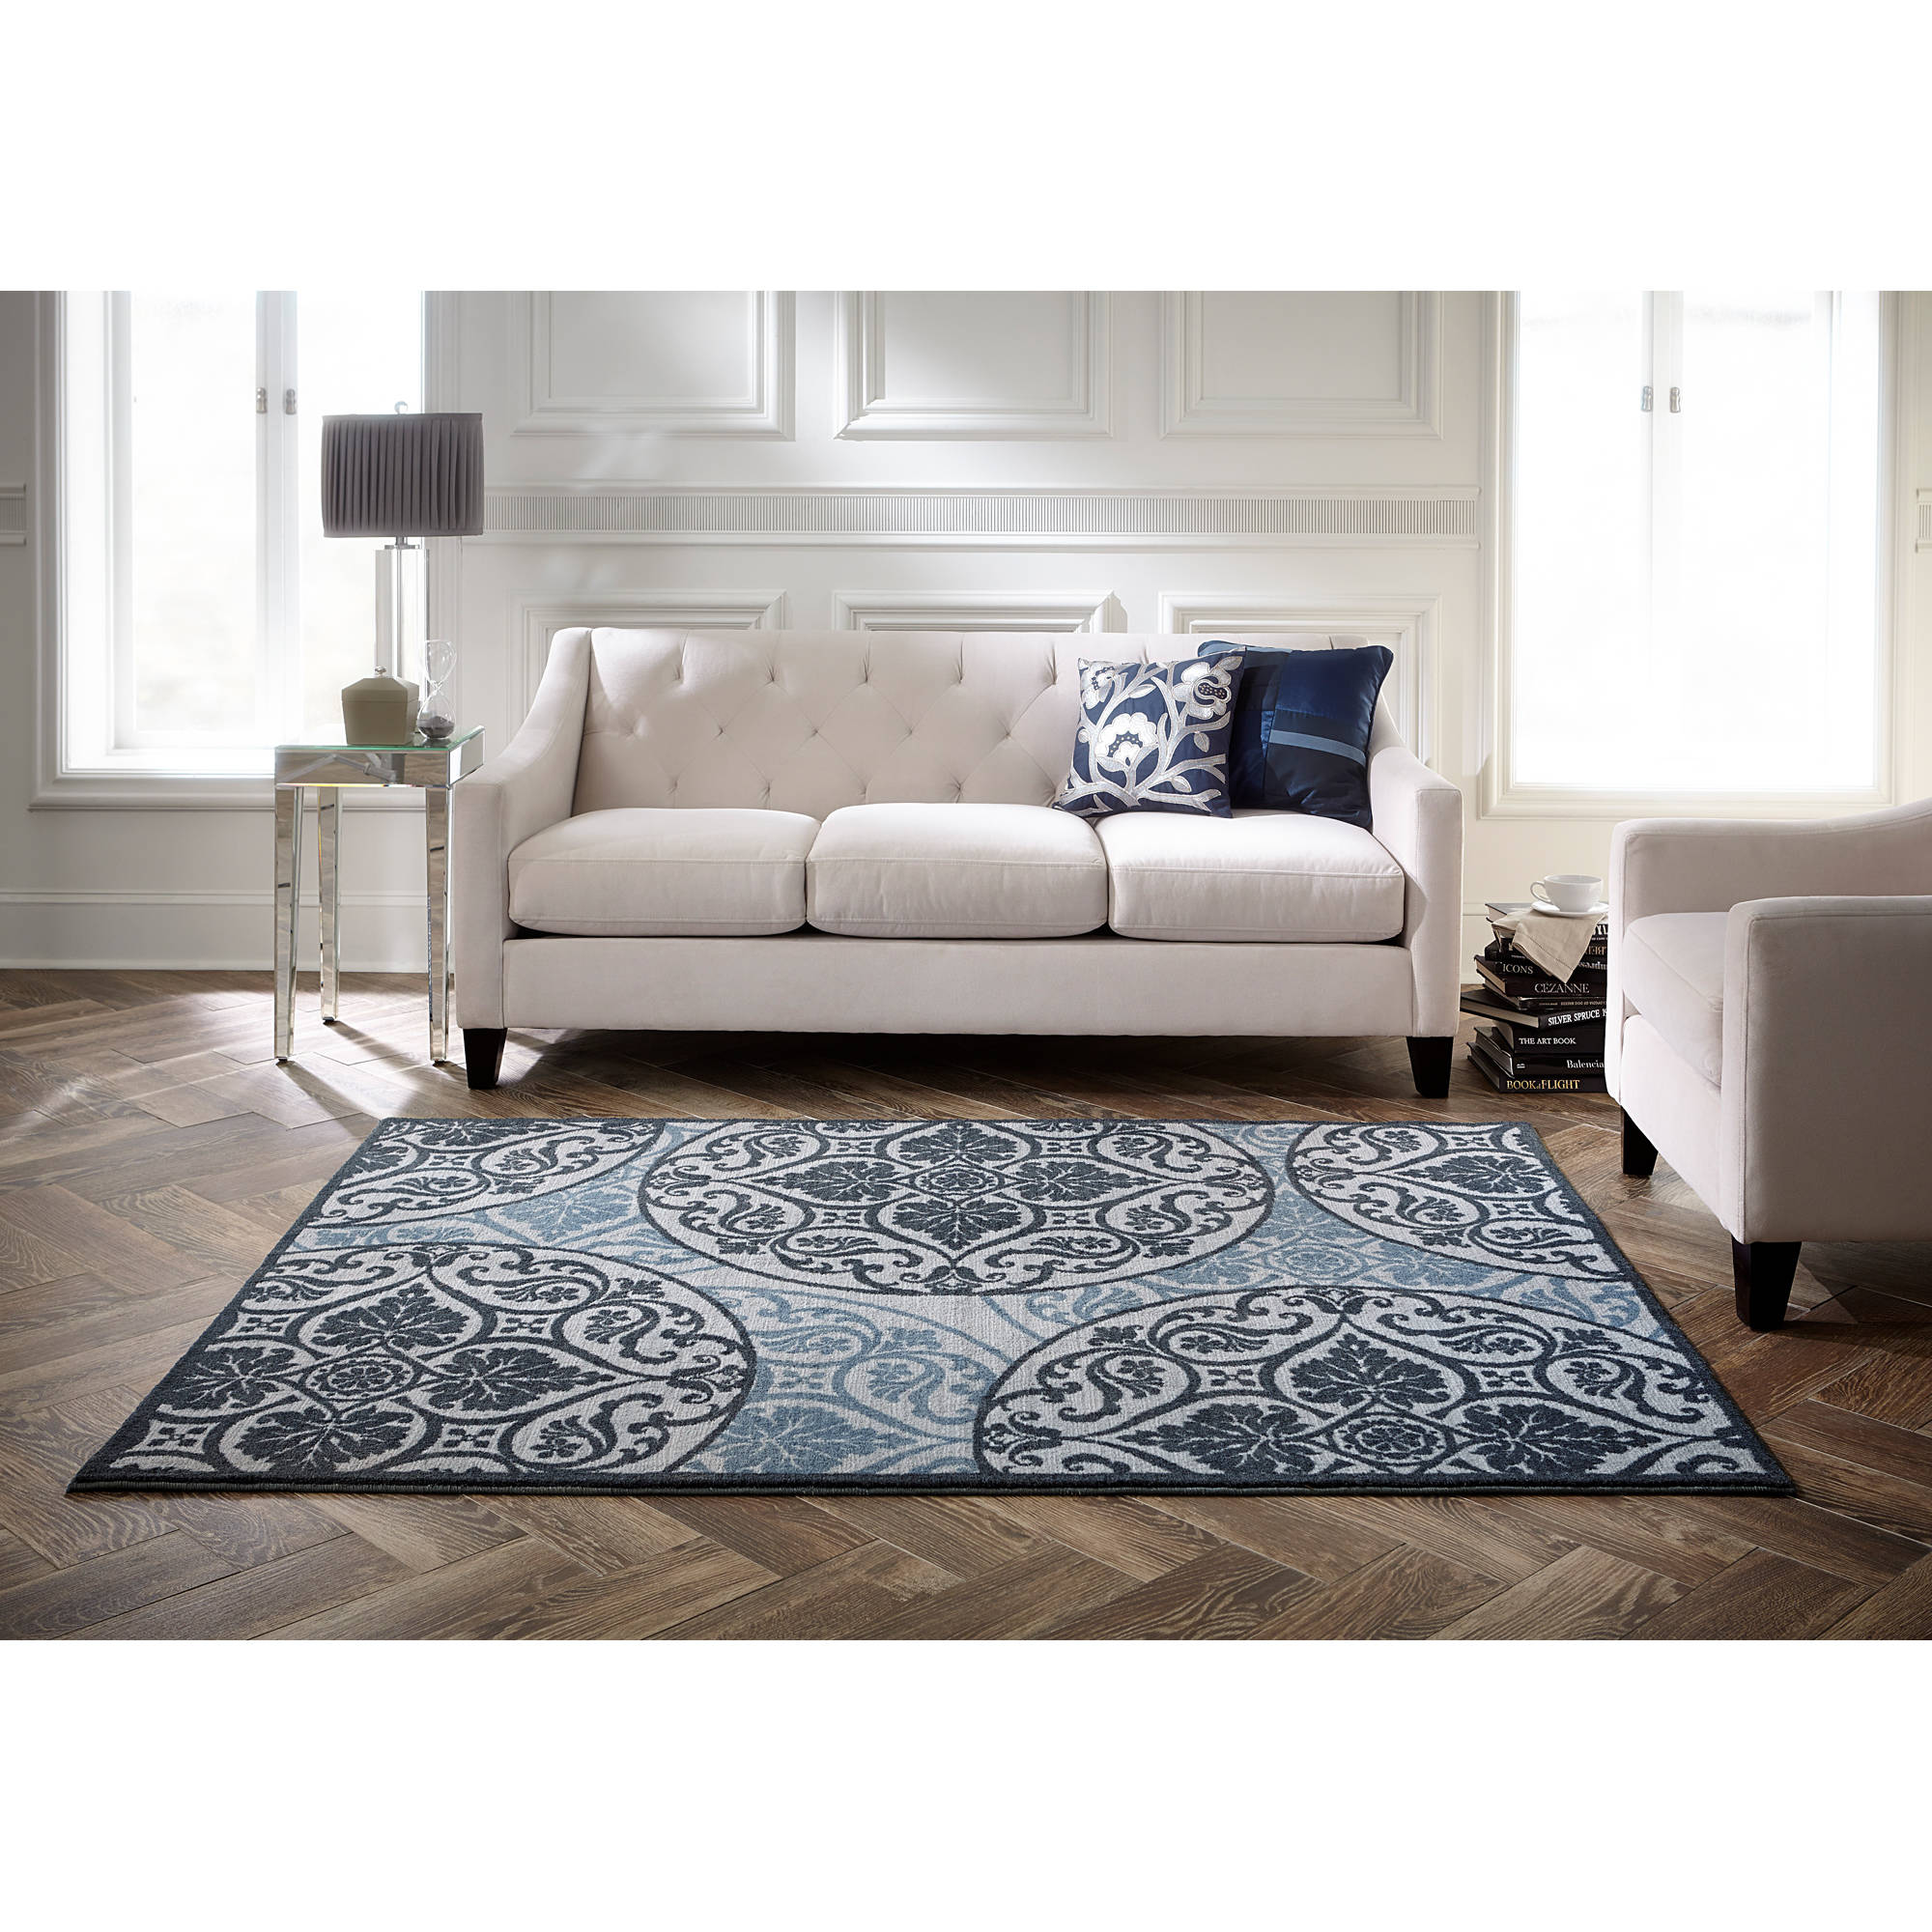 Blue Area Rugs For Living Room